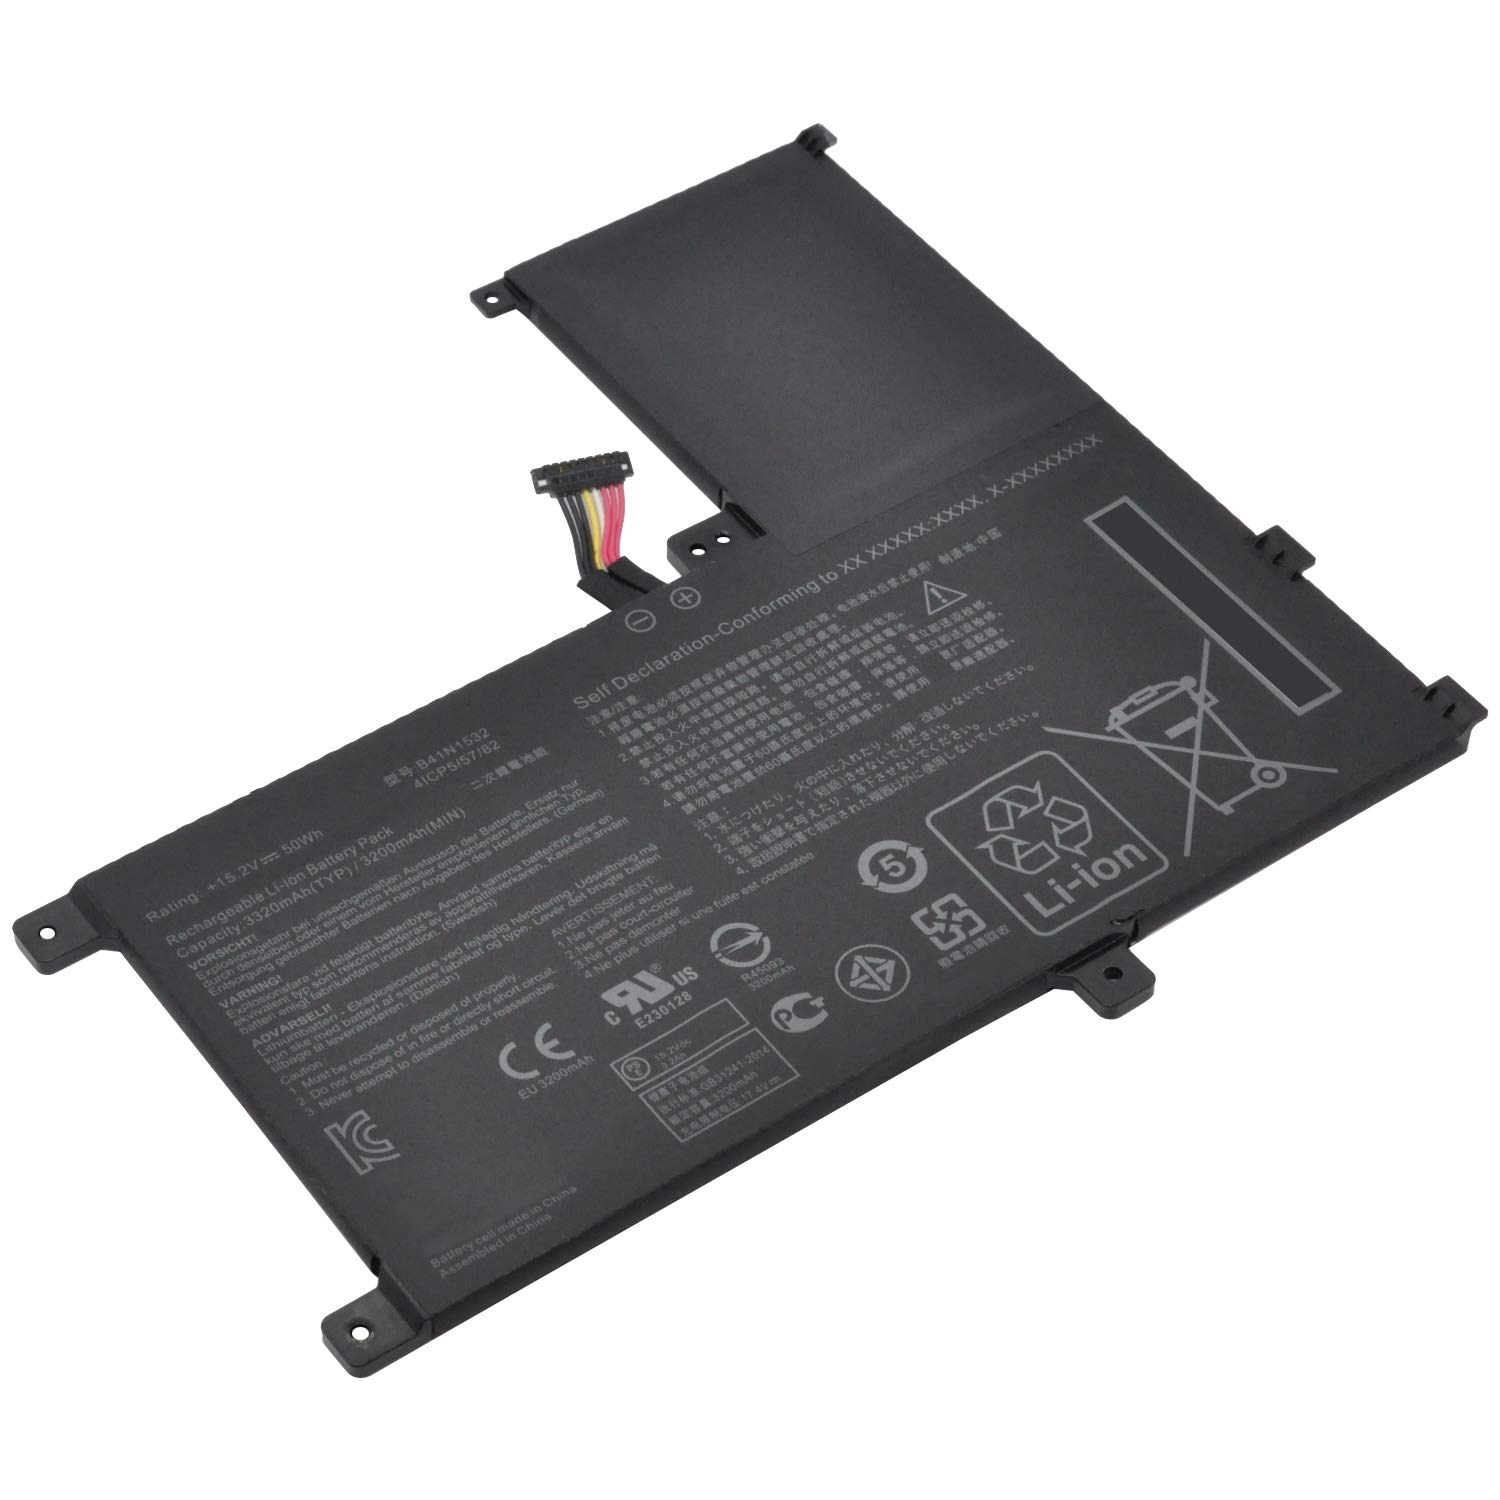 DGTECH New B41N1532 Laptop Battery Compatible with ASUS Q504UA 15.6'' 0B200-02010100 (15.2V 50Wh)